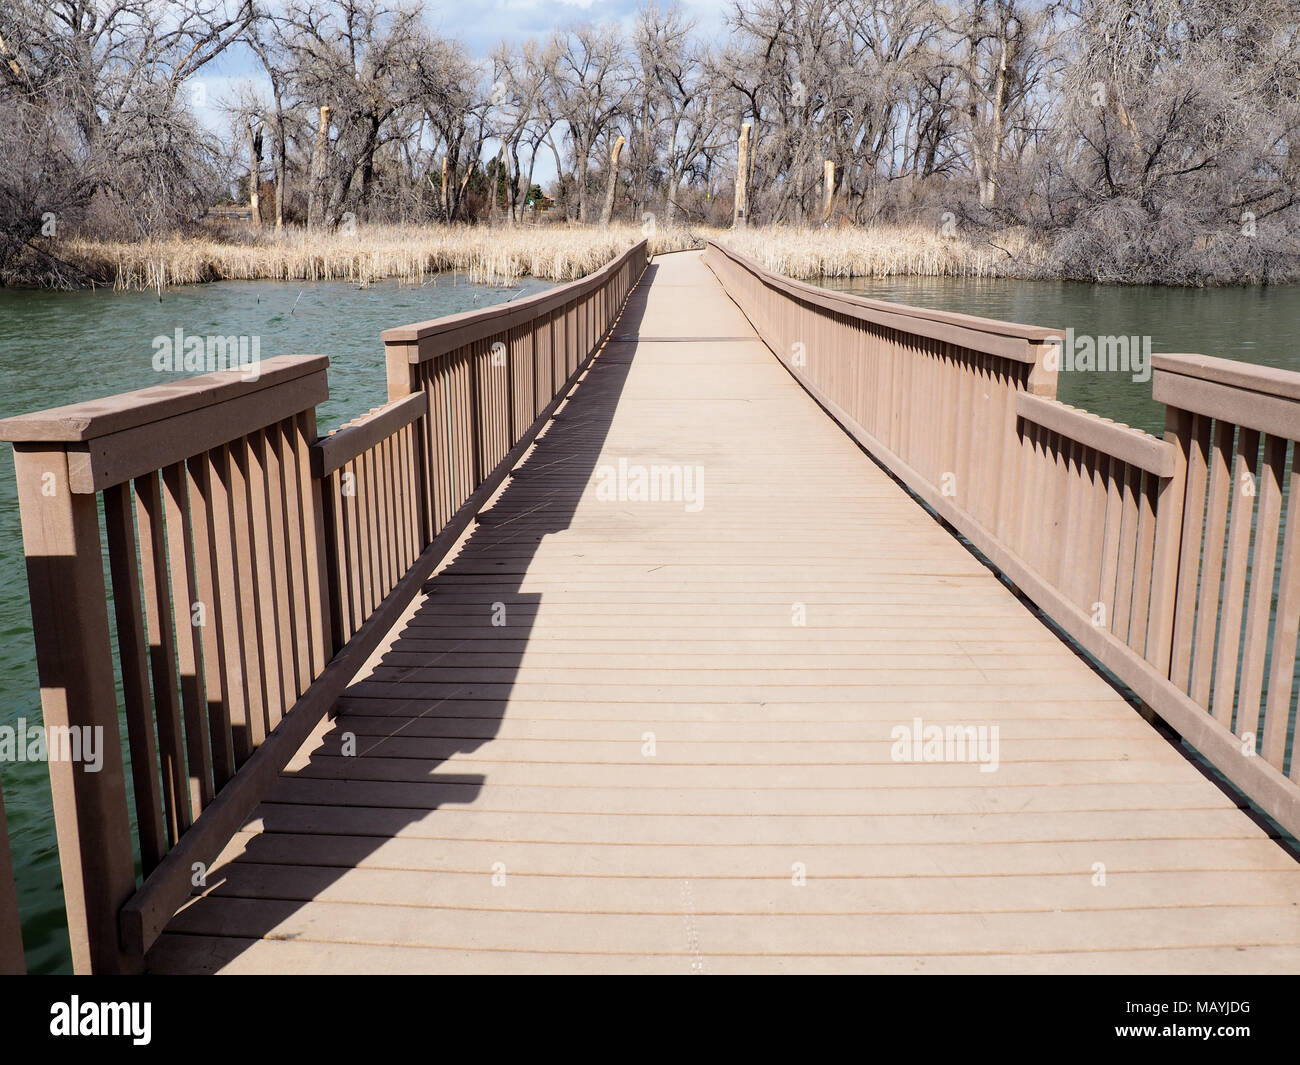 A long walkway, made of composite material, spans over water. - Stock Image